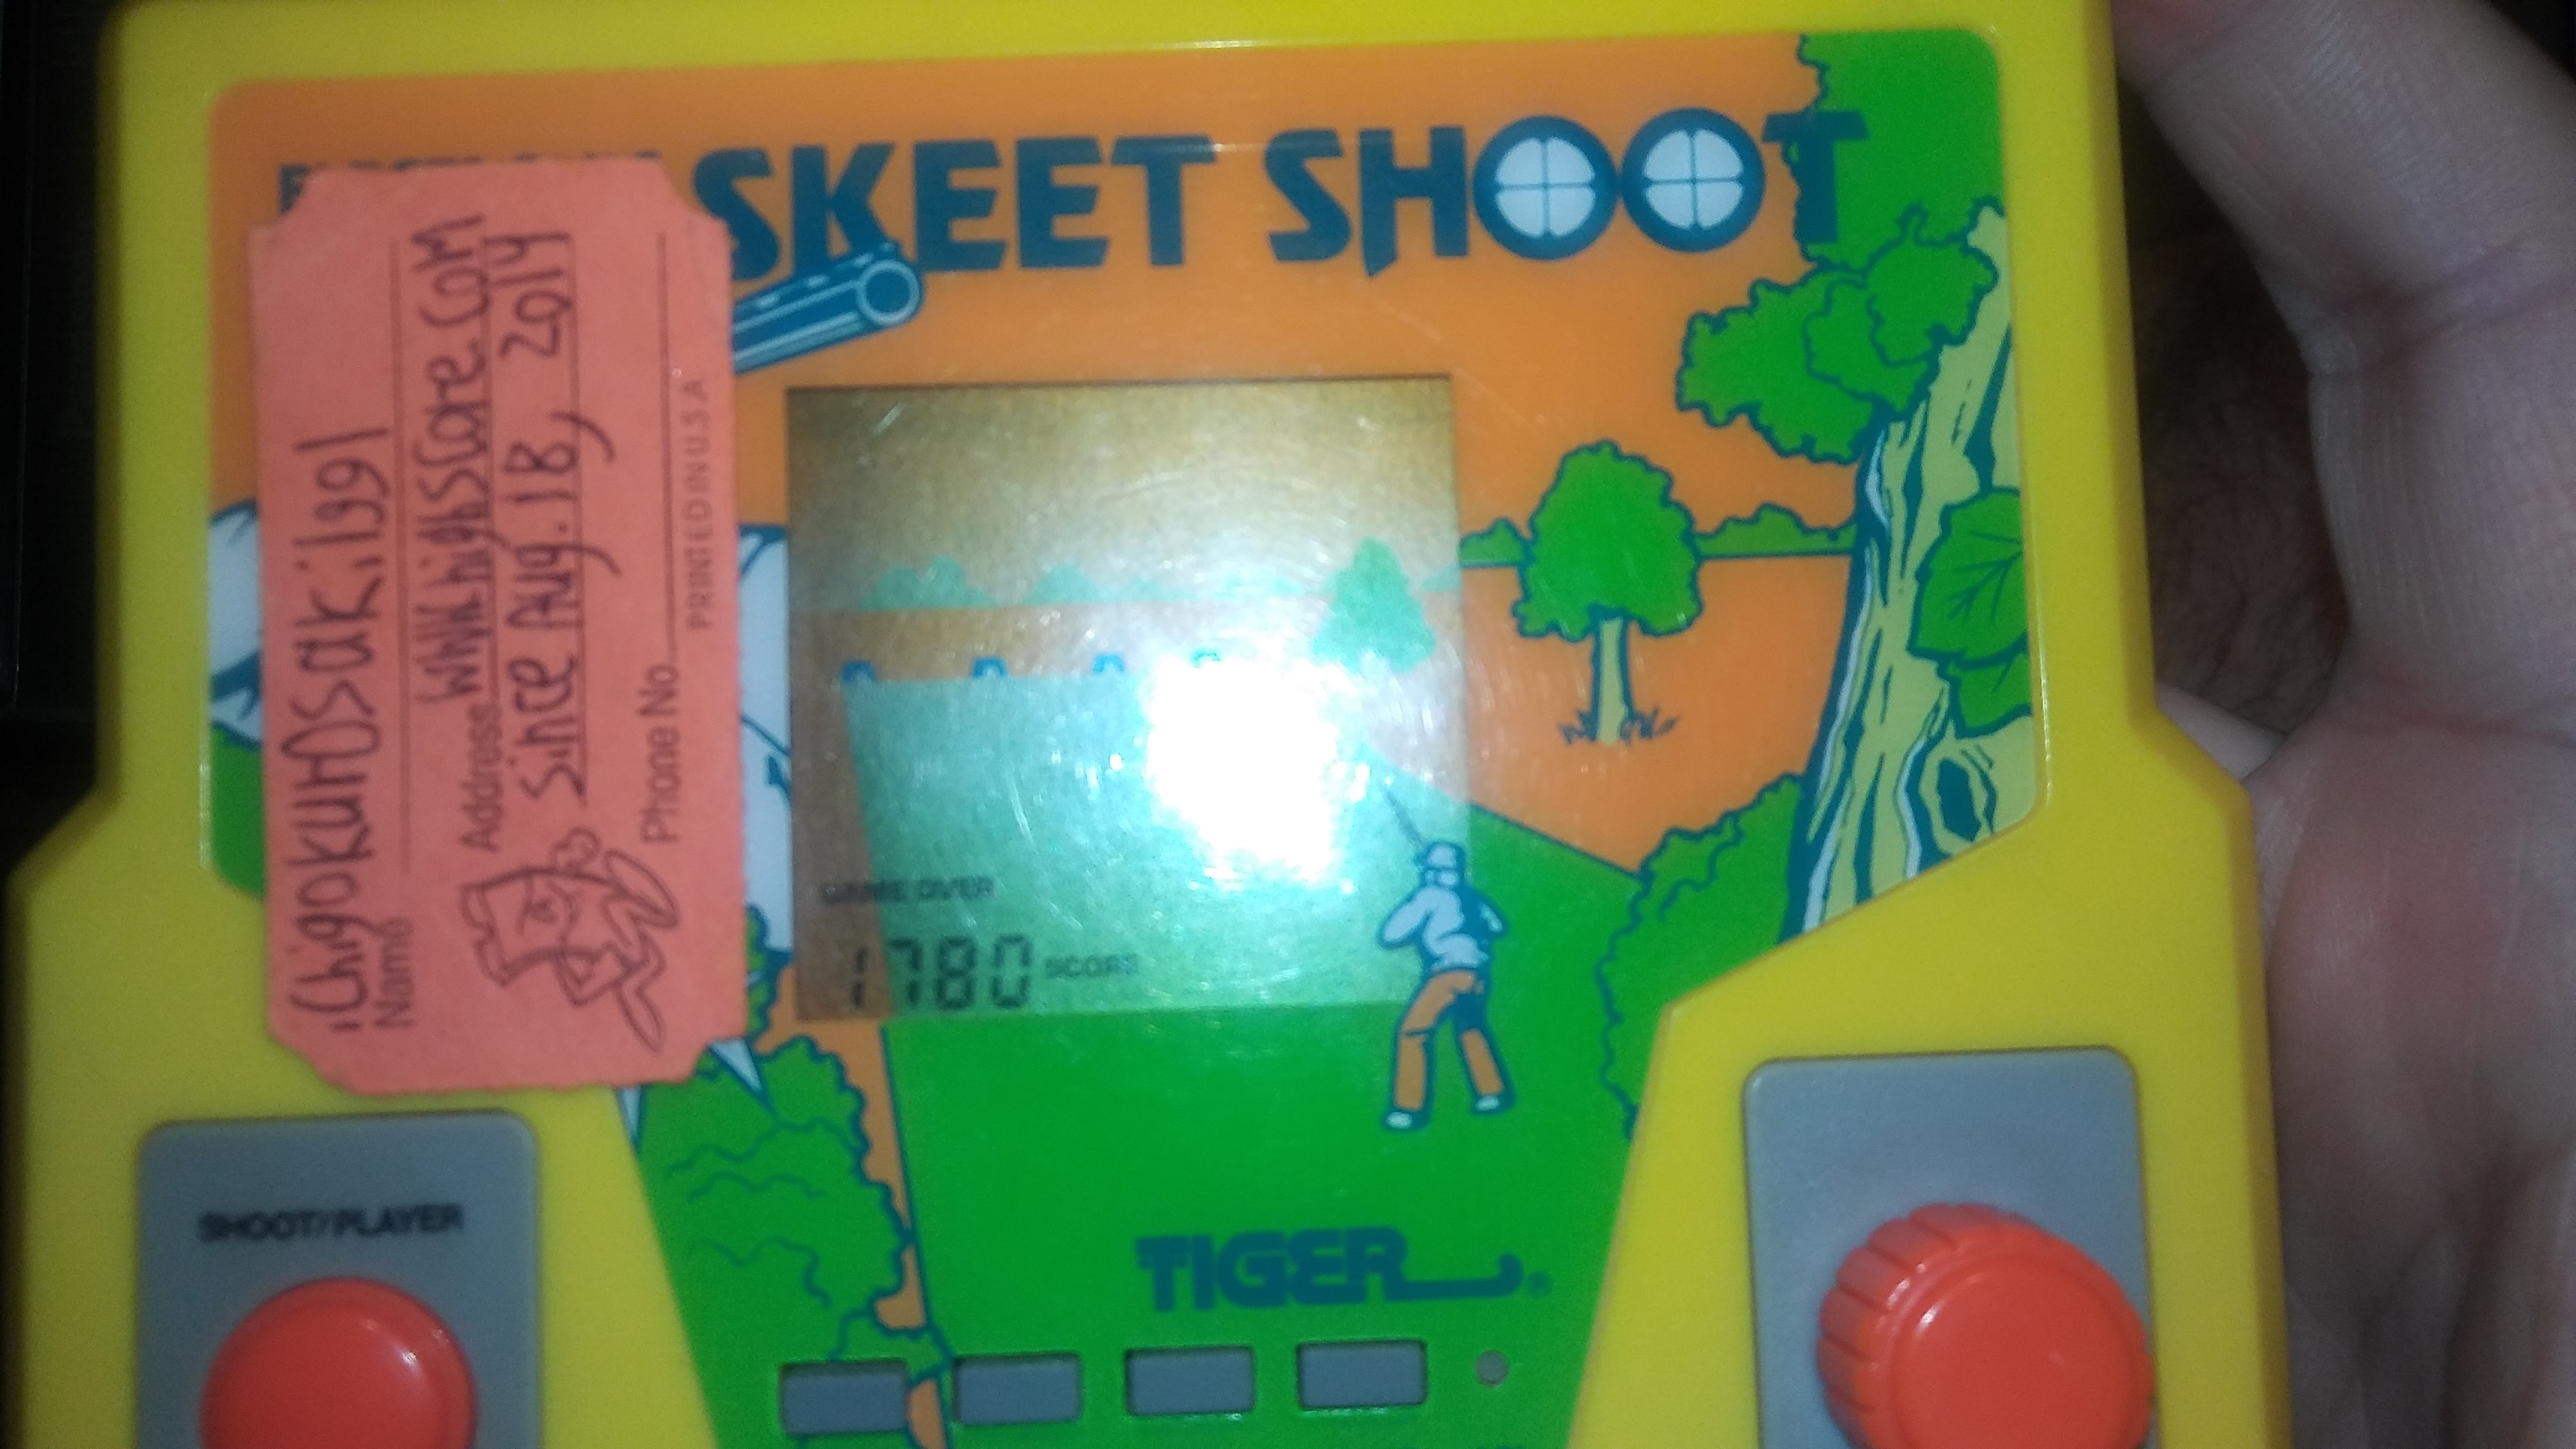 Tiger Electronics Skeet Shoot [Game 1] 1,780 points